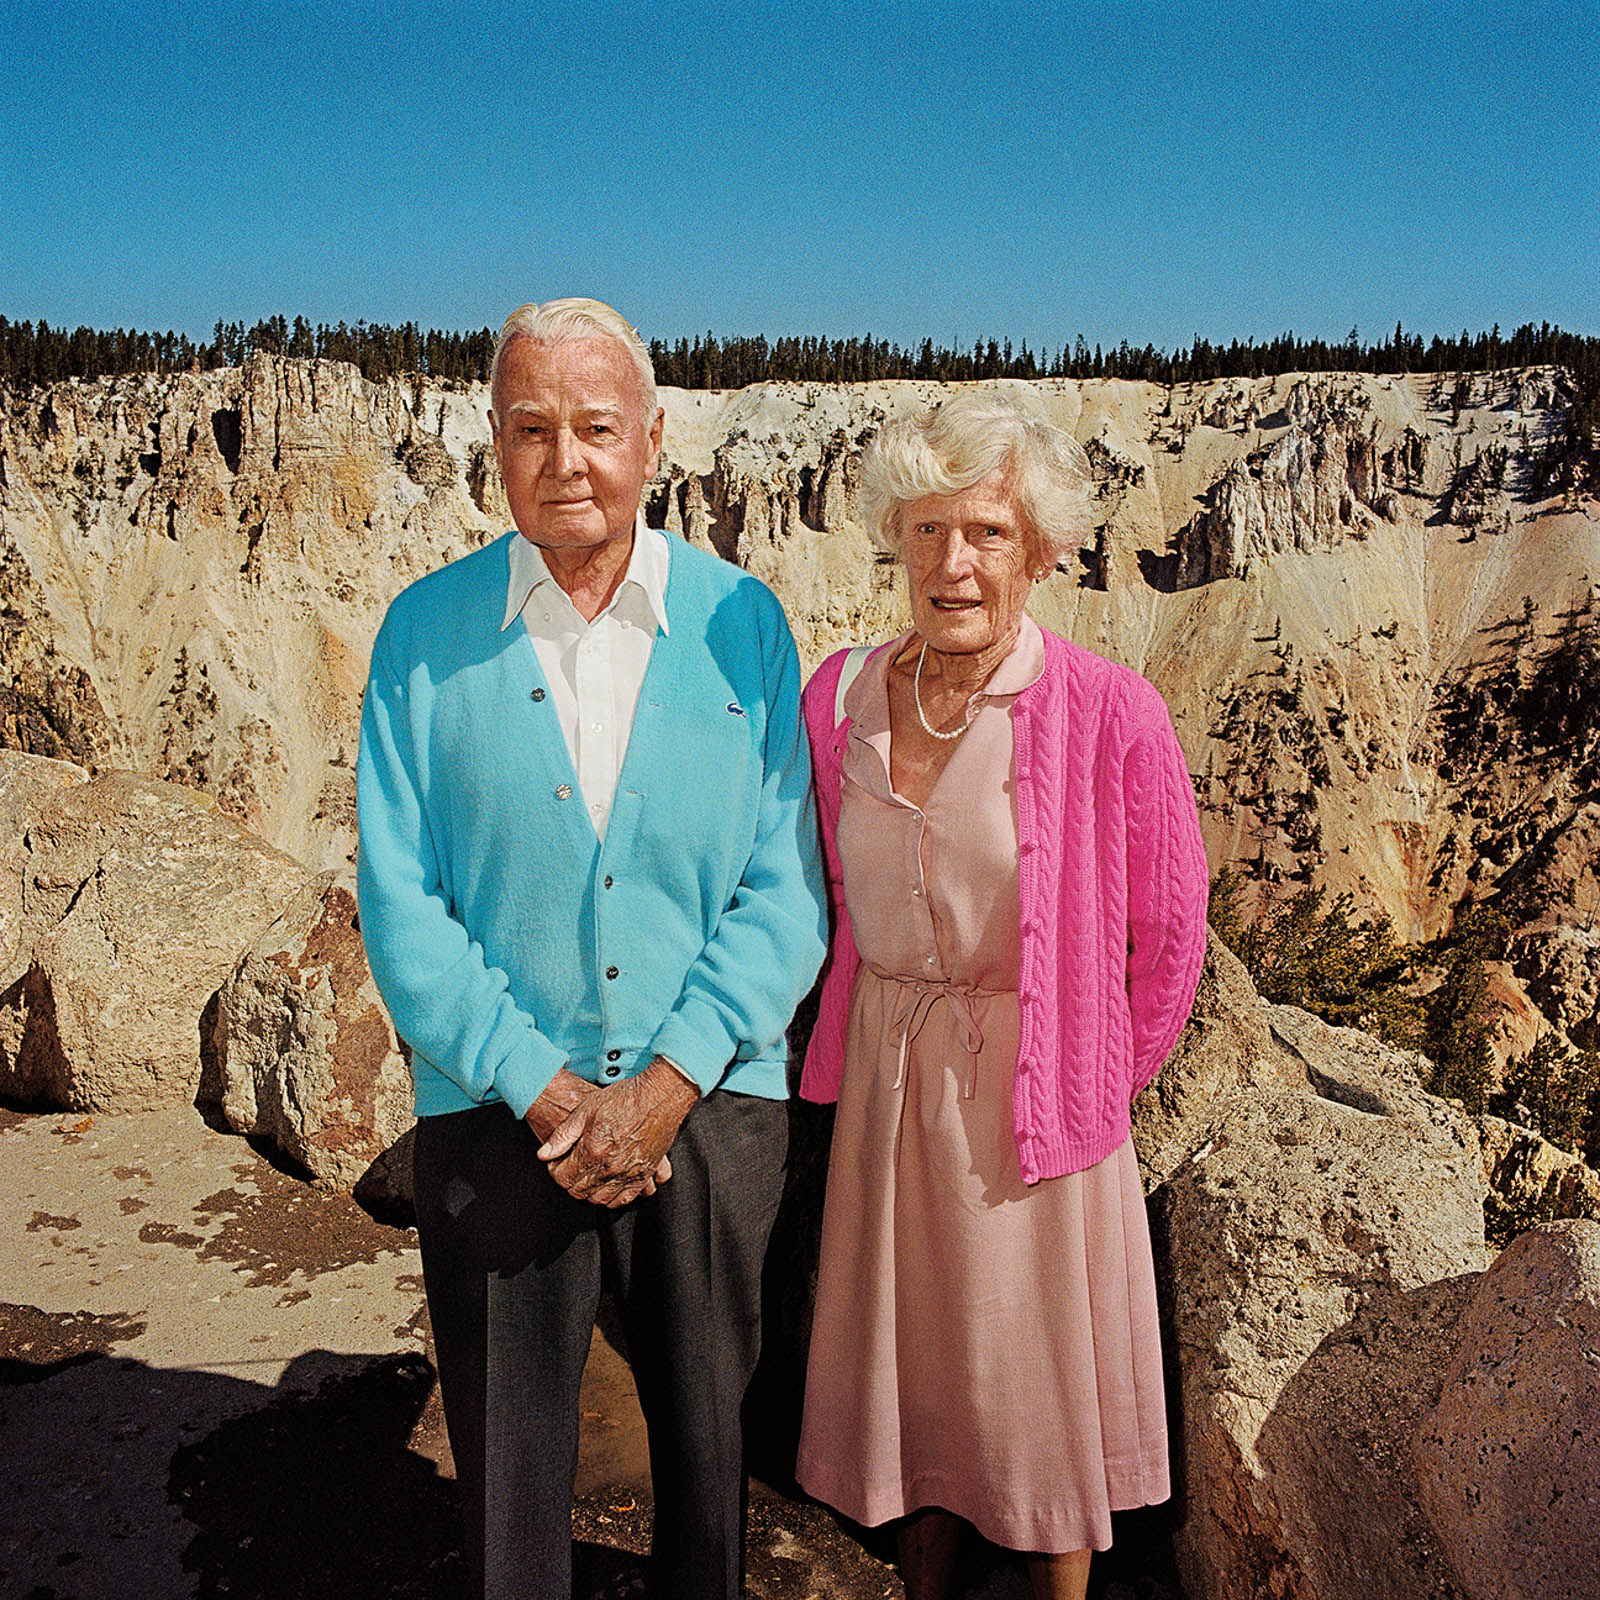 Couple at Yellowstone National Park, Wyoming 1980